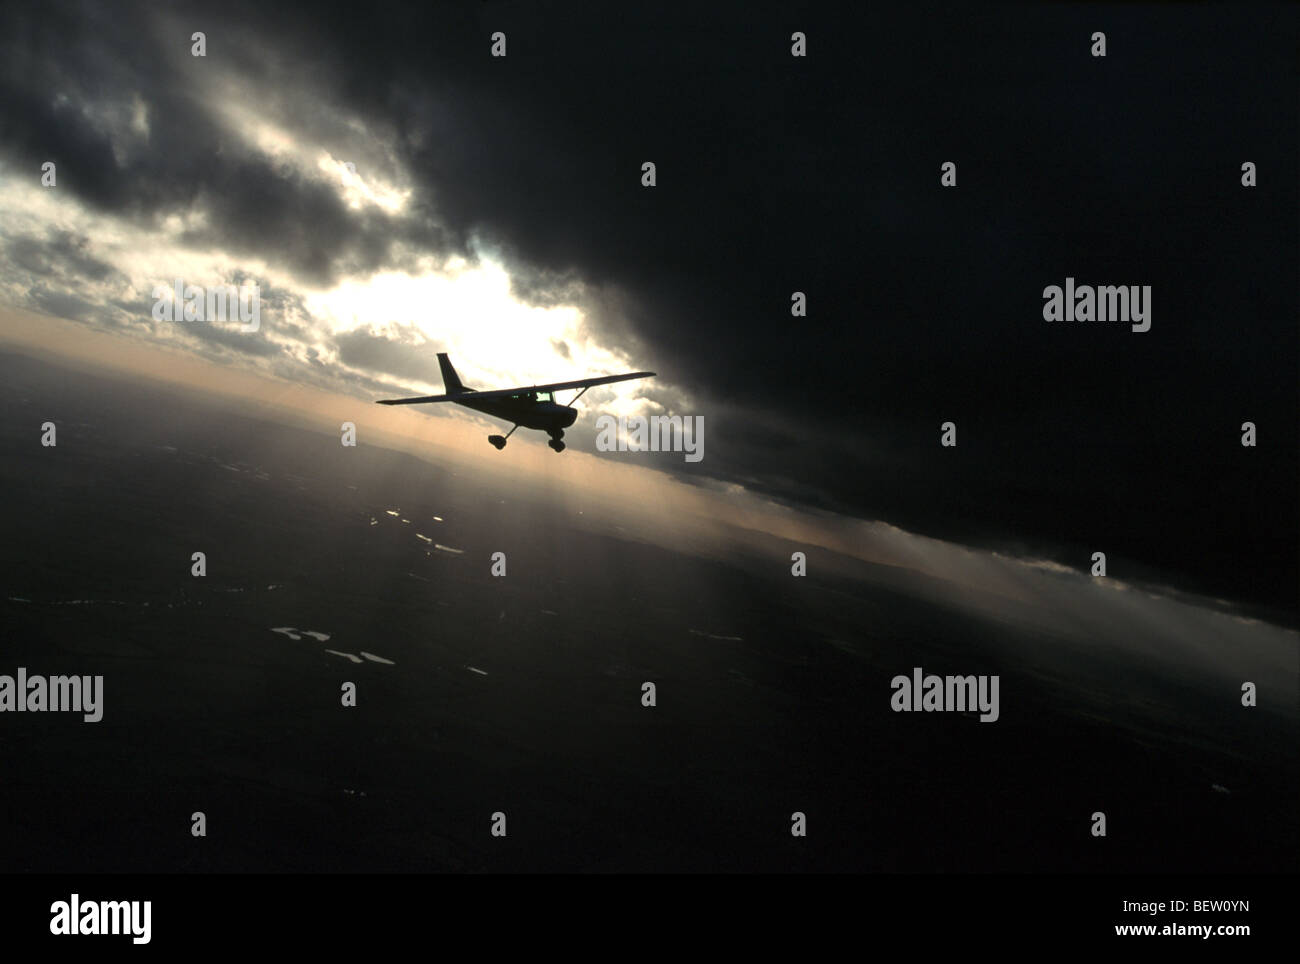 Vol d'avion de la lumière à travers les nuages Photo Stock